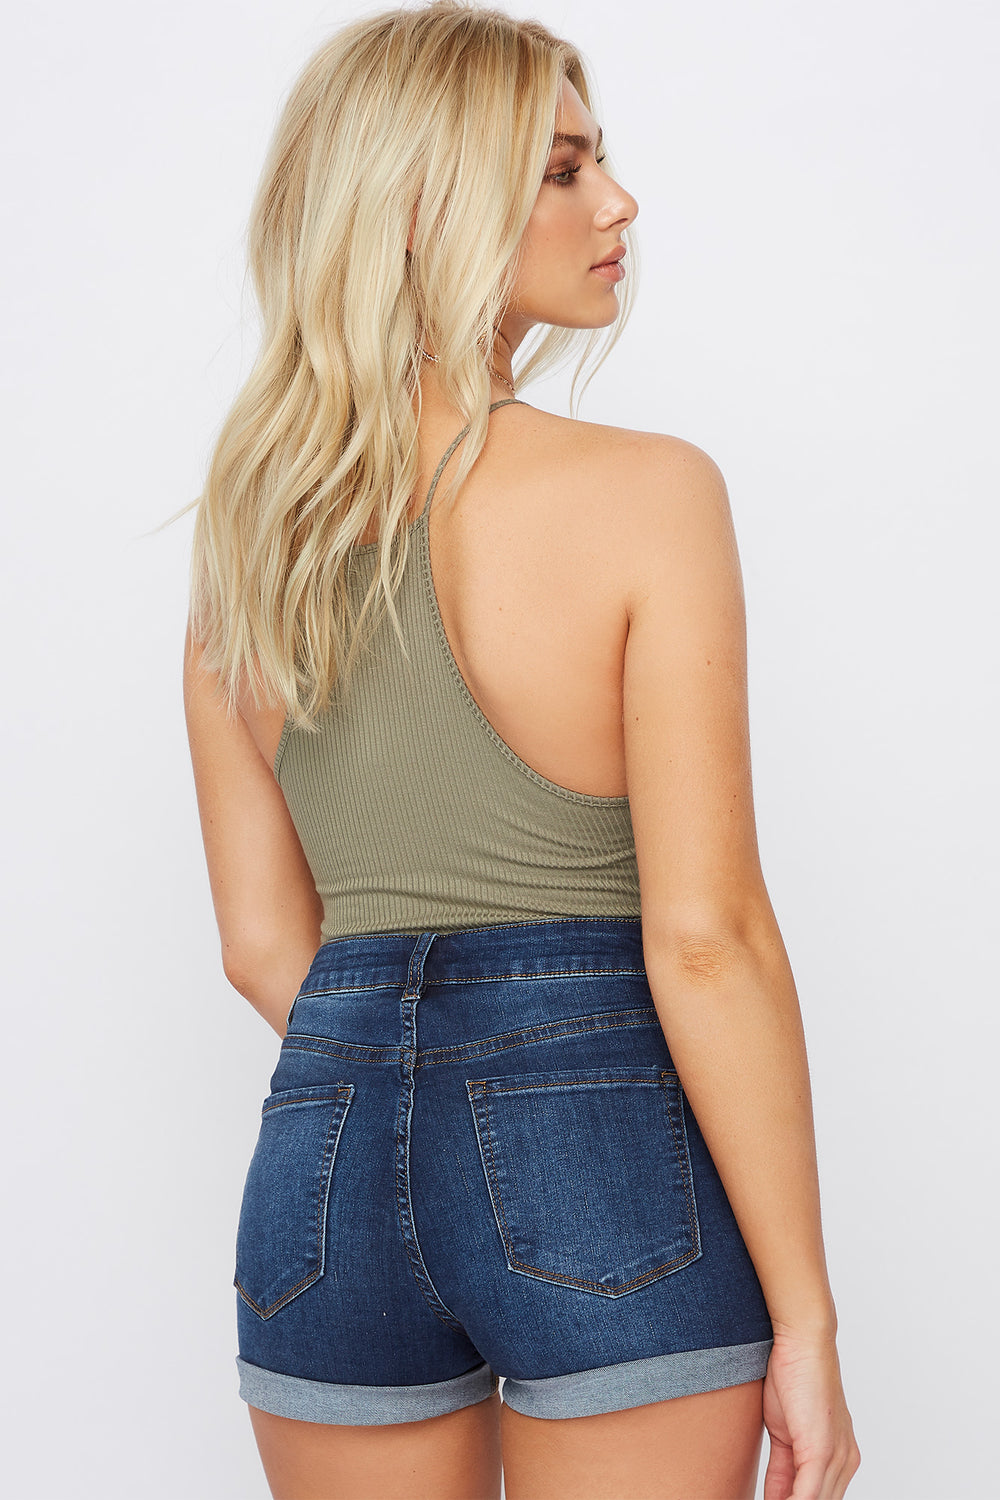 Miami High-Rise Cuffed Dark Wash Denim Short Denim Blue